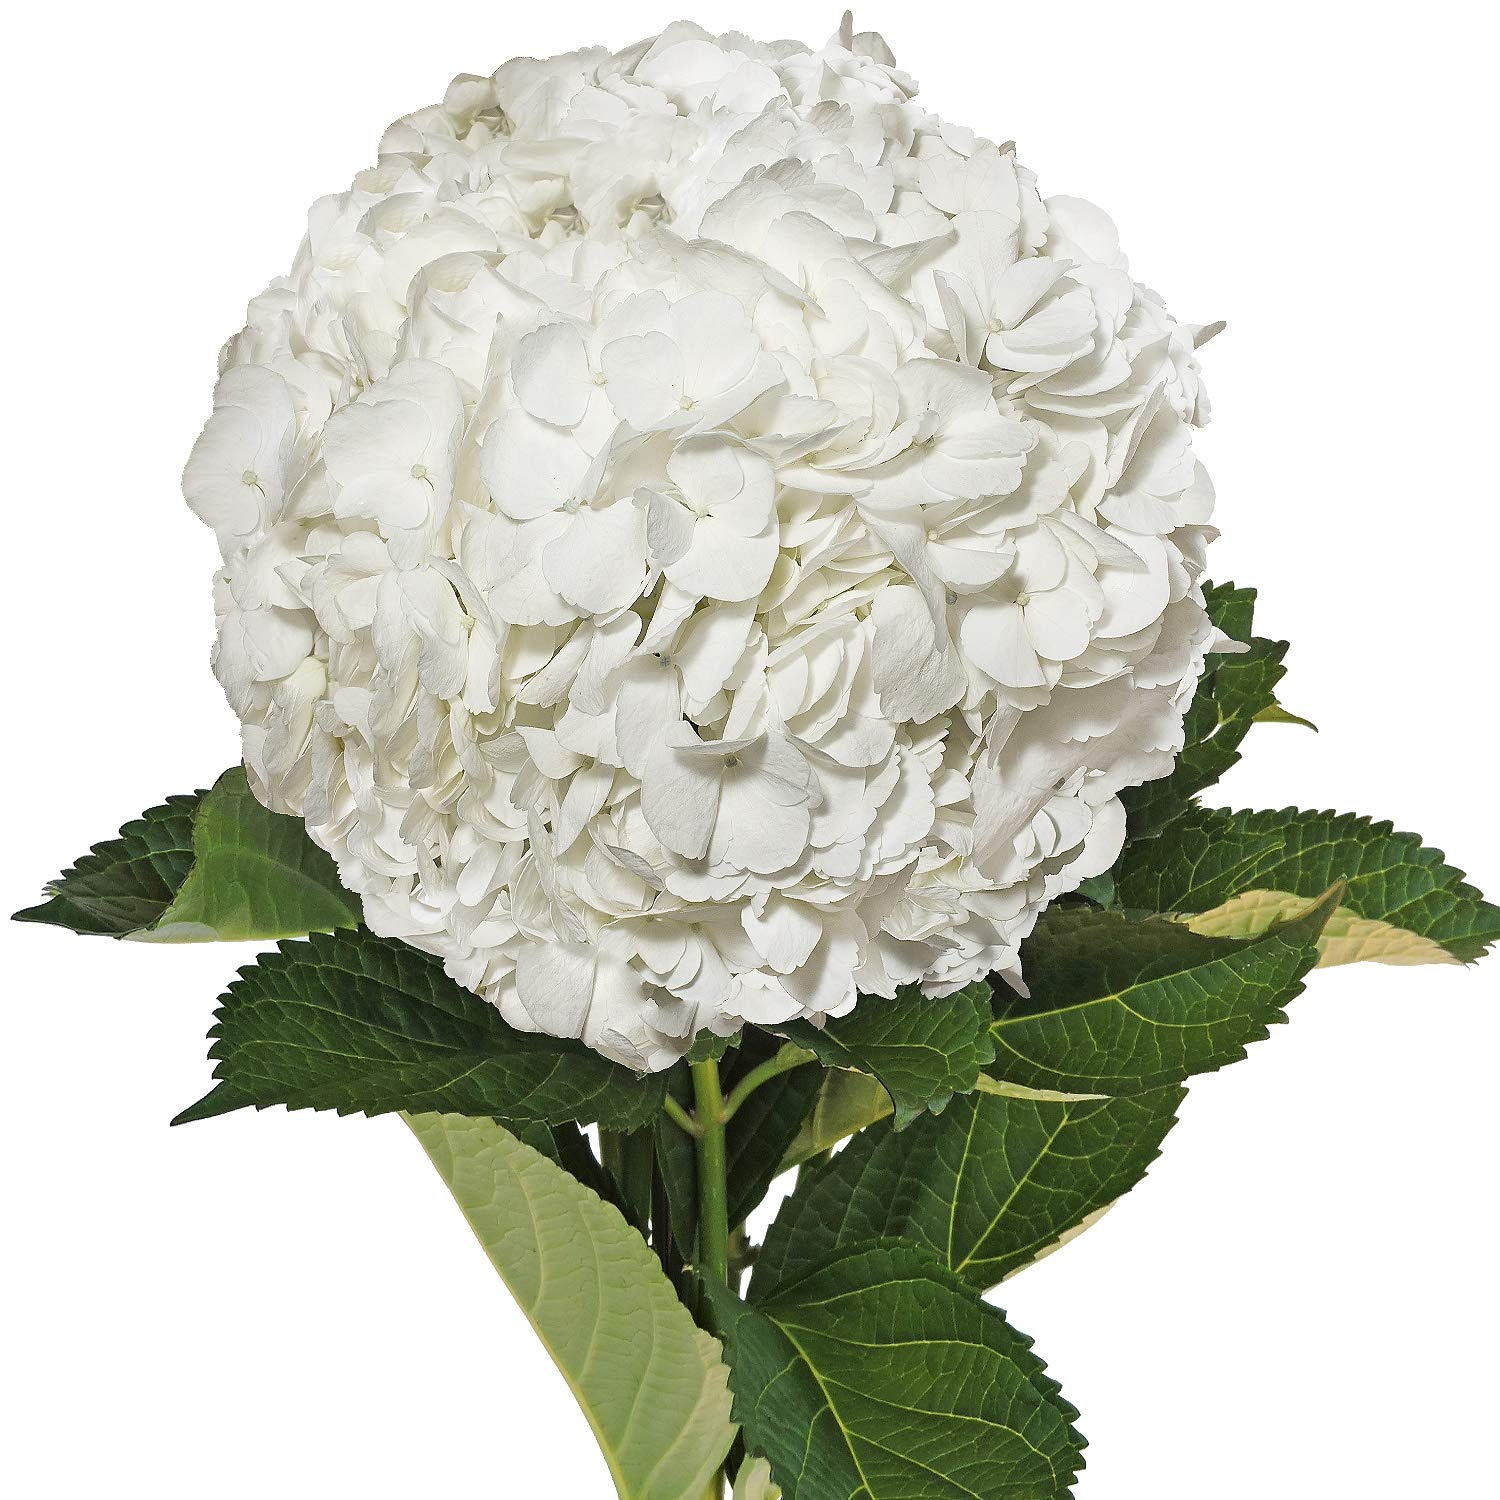 Farm Fresh Natural White Hydrangeas - Pack 15 by Bloomingmore